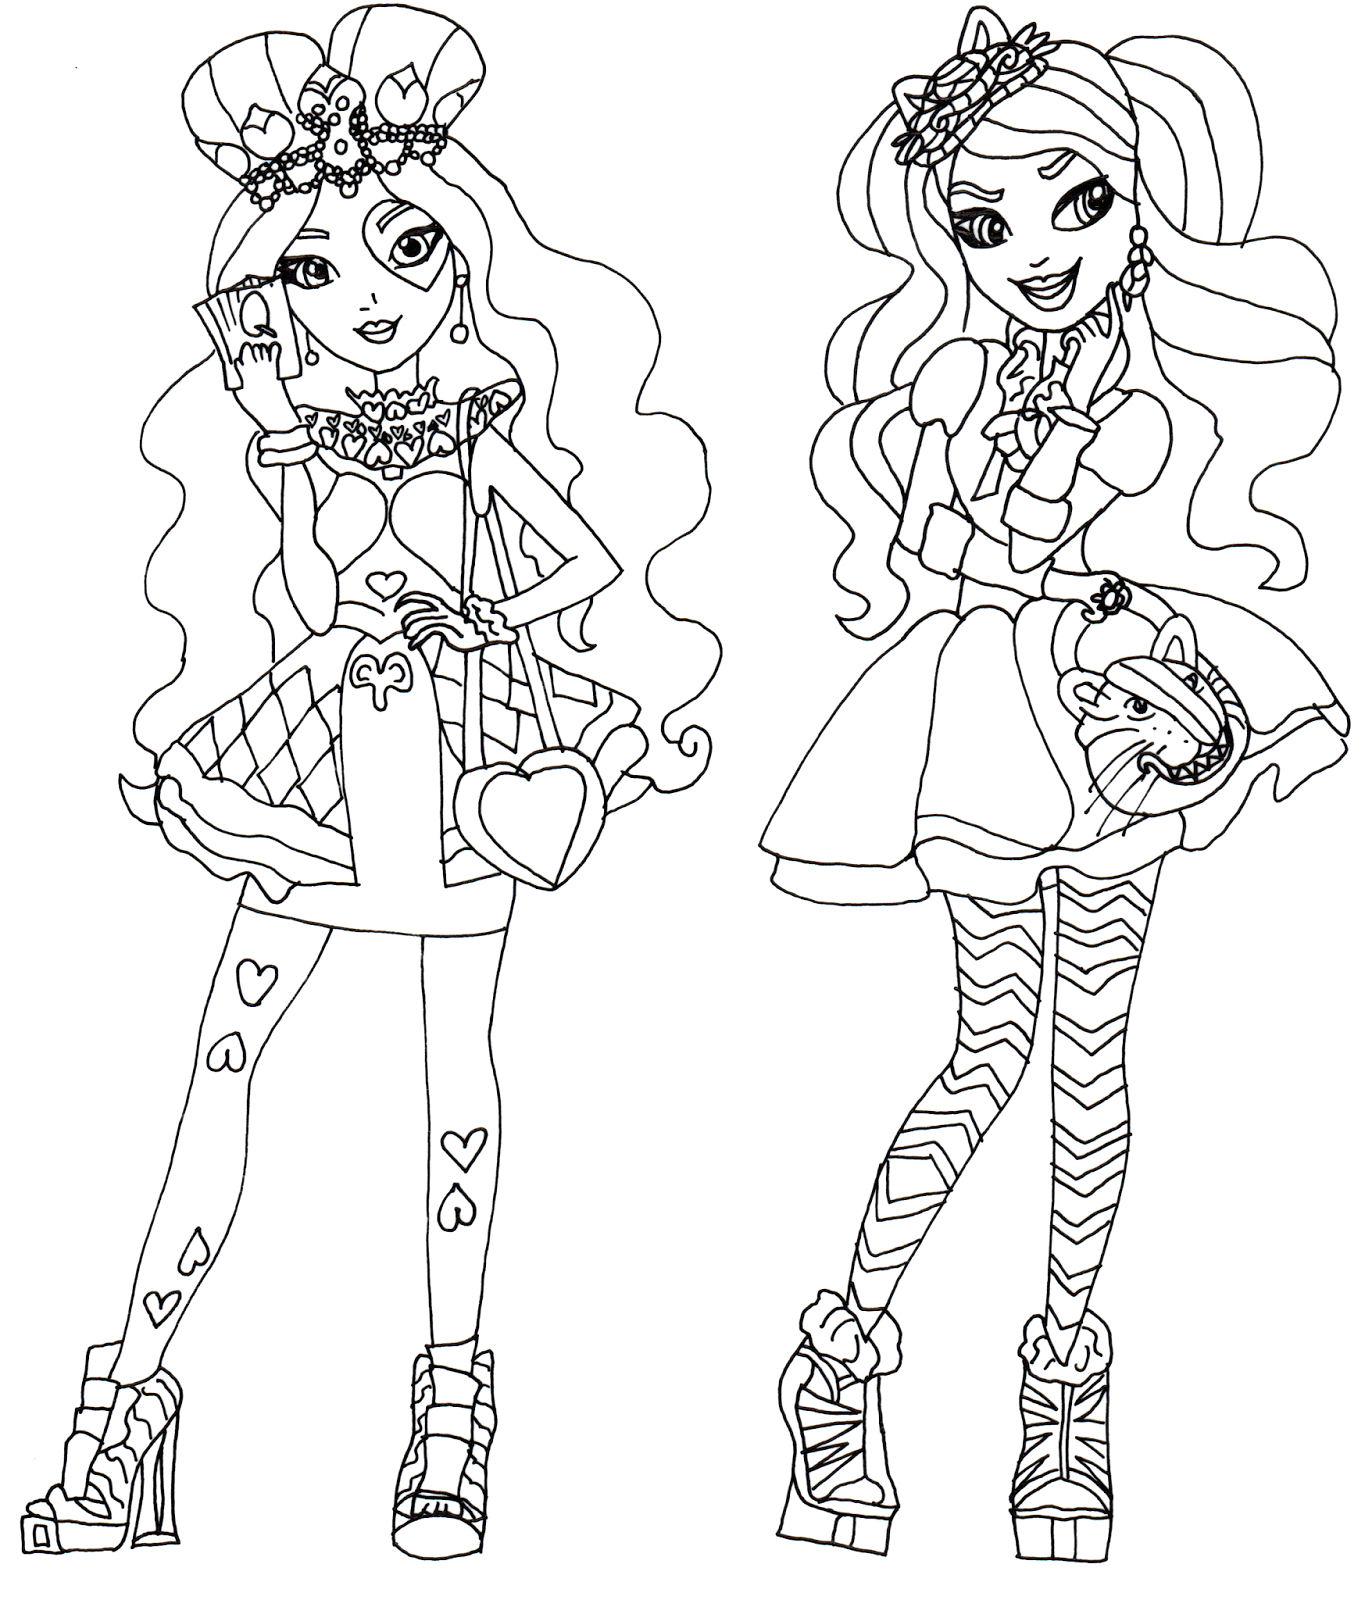 lizzie hearts and kitty cheshire ever